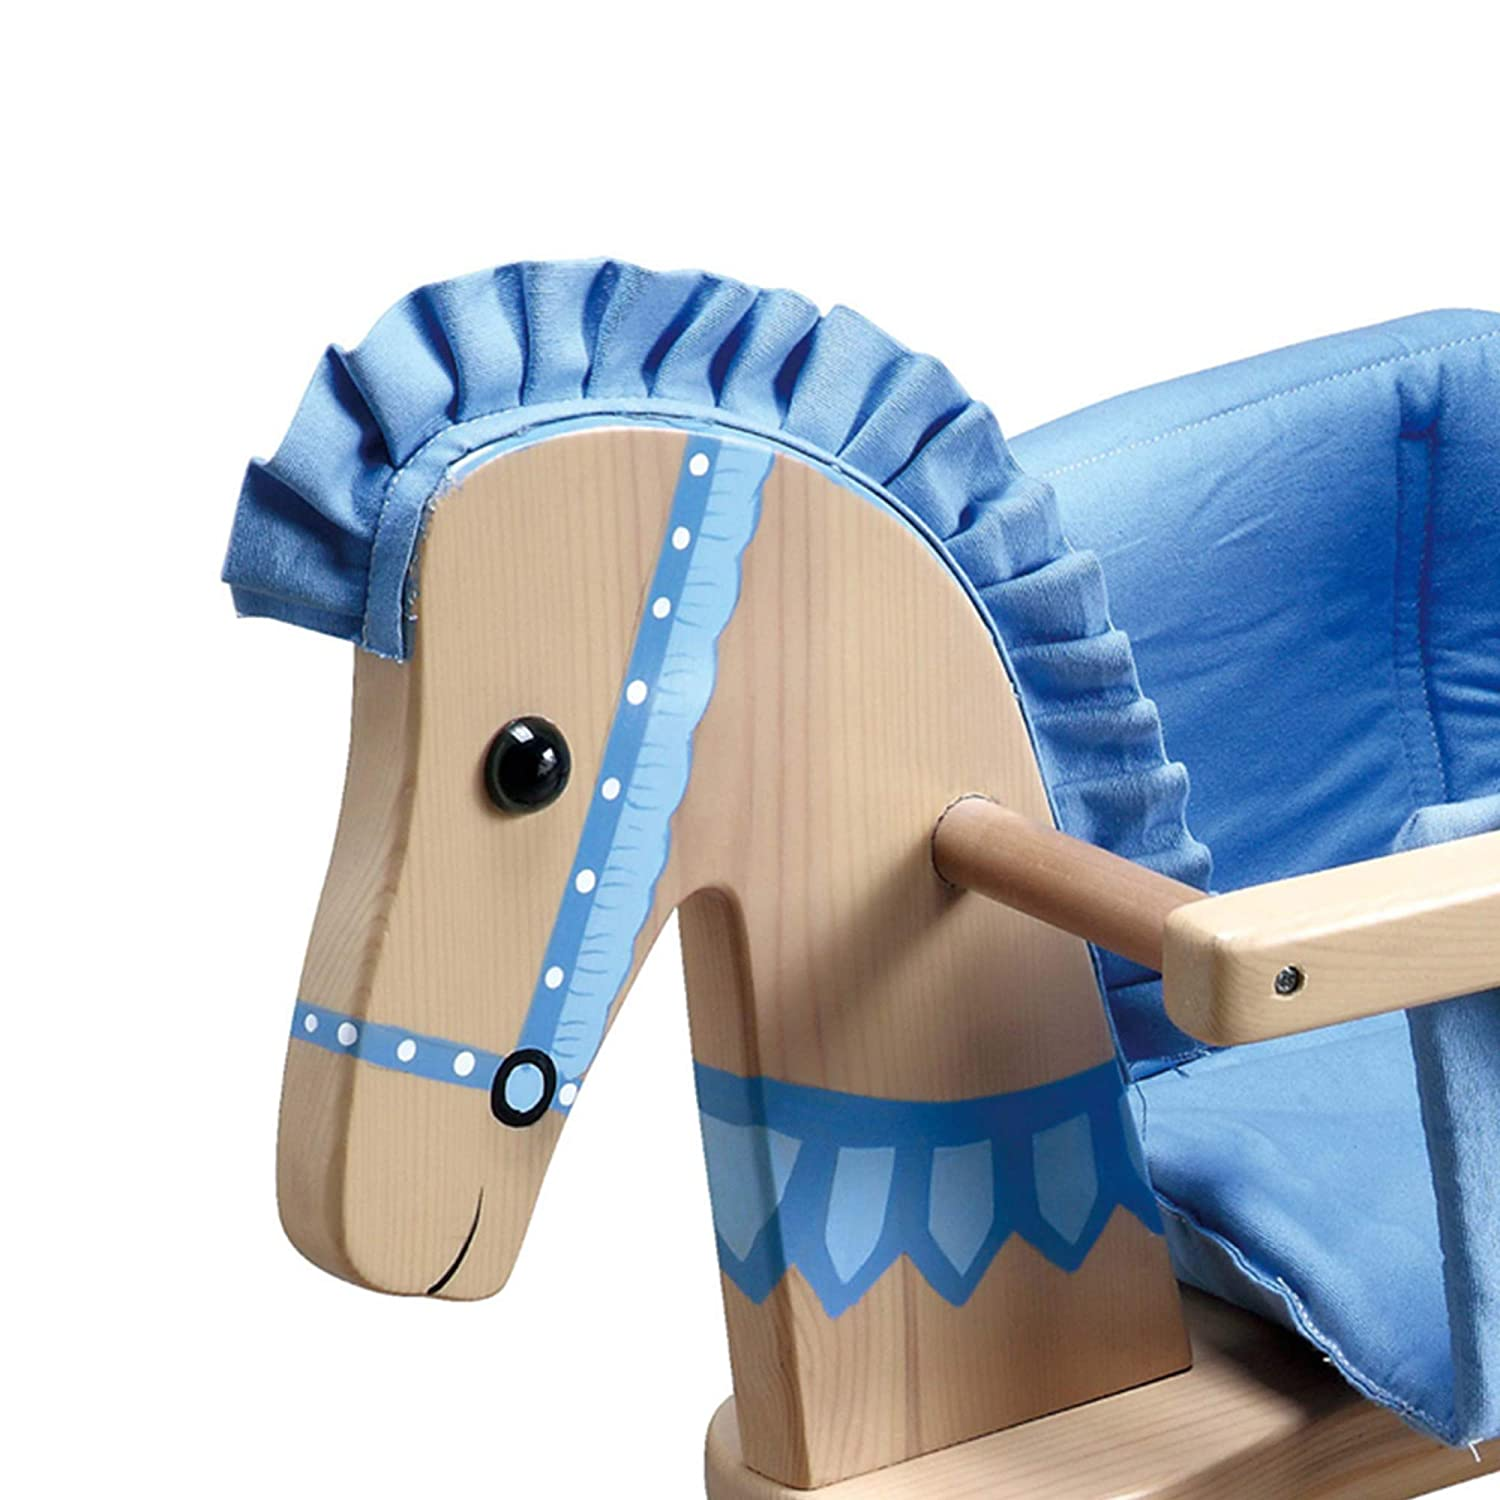 Natural//Blue Teamson Kids Safari Wooden Rocking Horse with Removeable Safety Surrond Pad for Toddlers